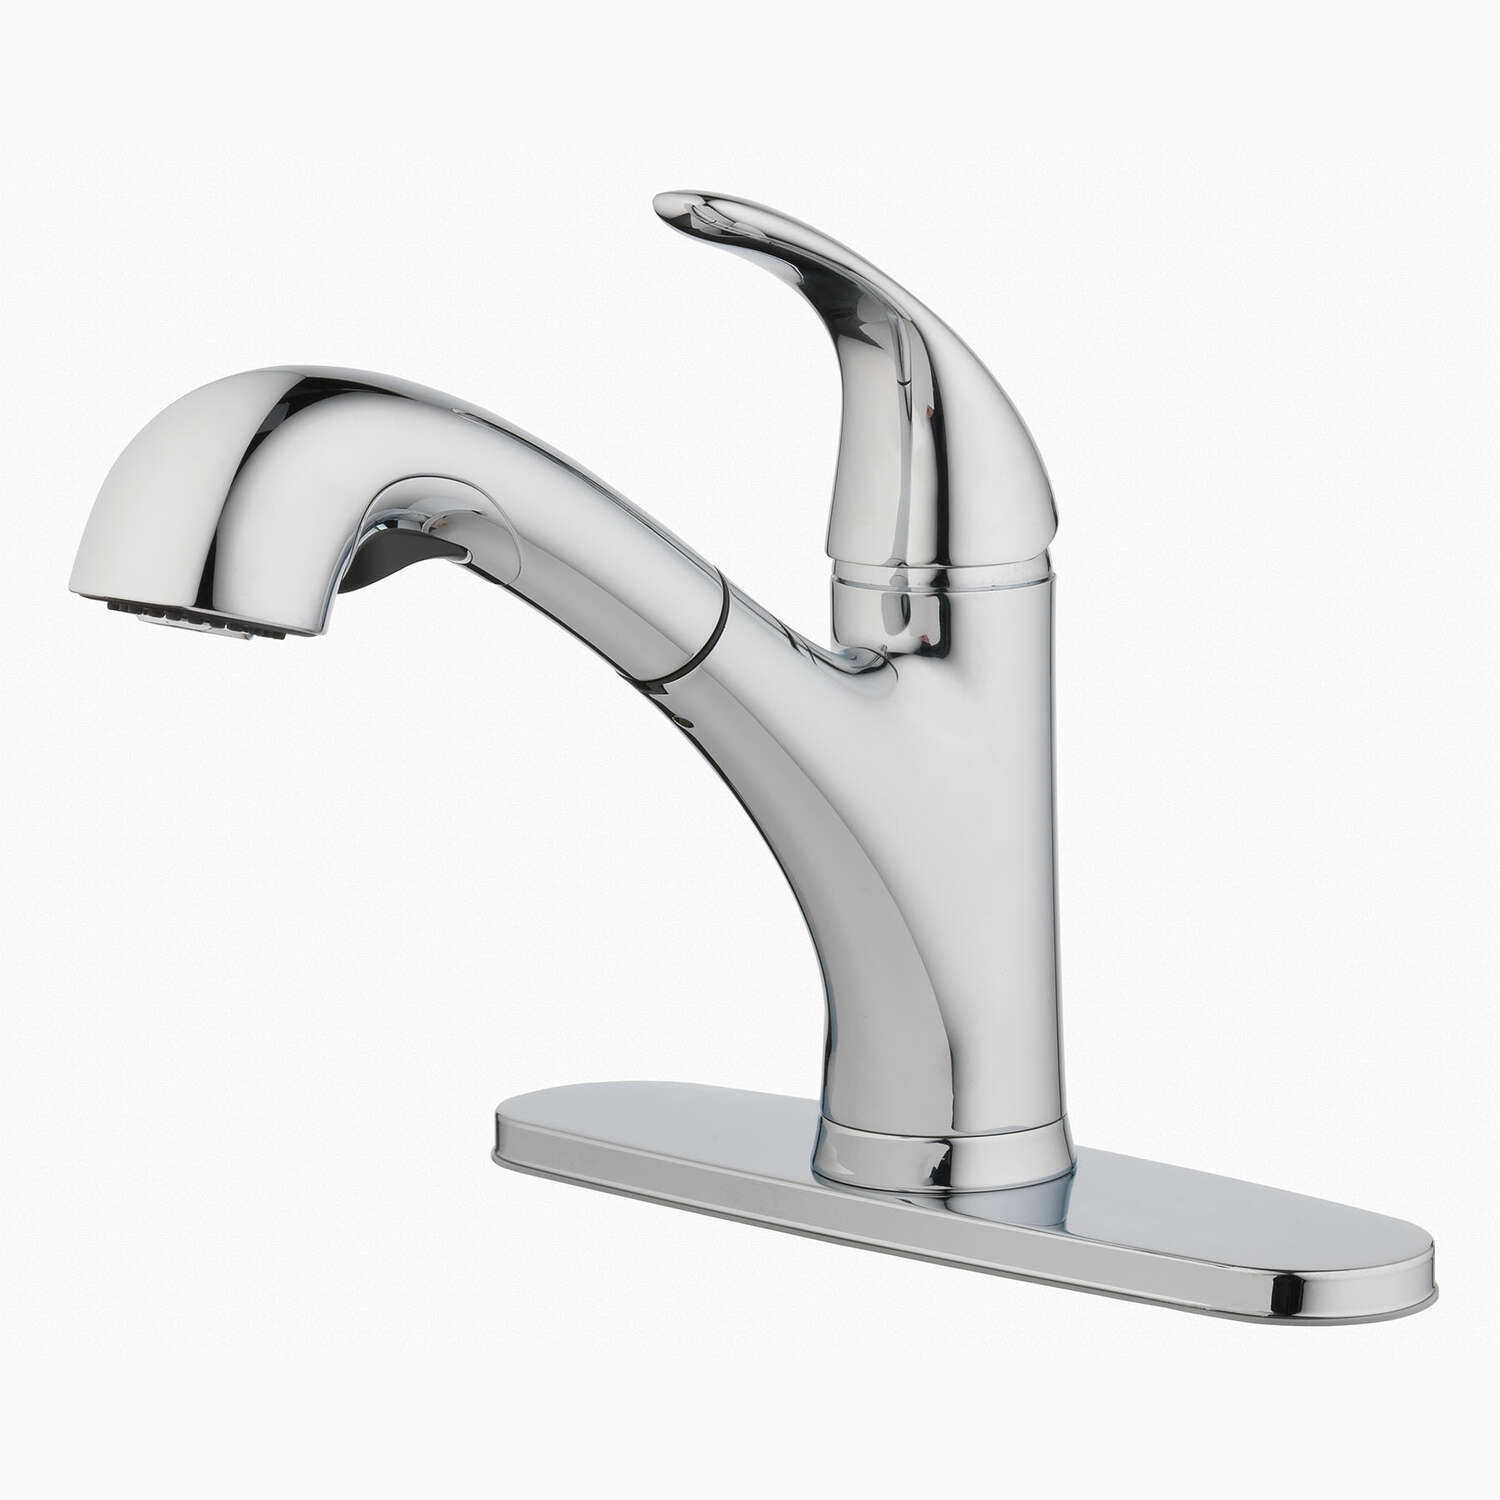 OakBrook Pacifica One Handle Brushed Nickel Pull Out Kitchen Faucet